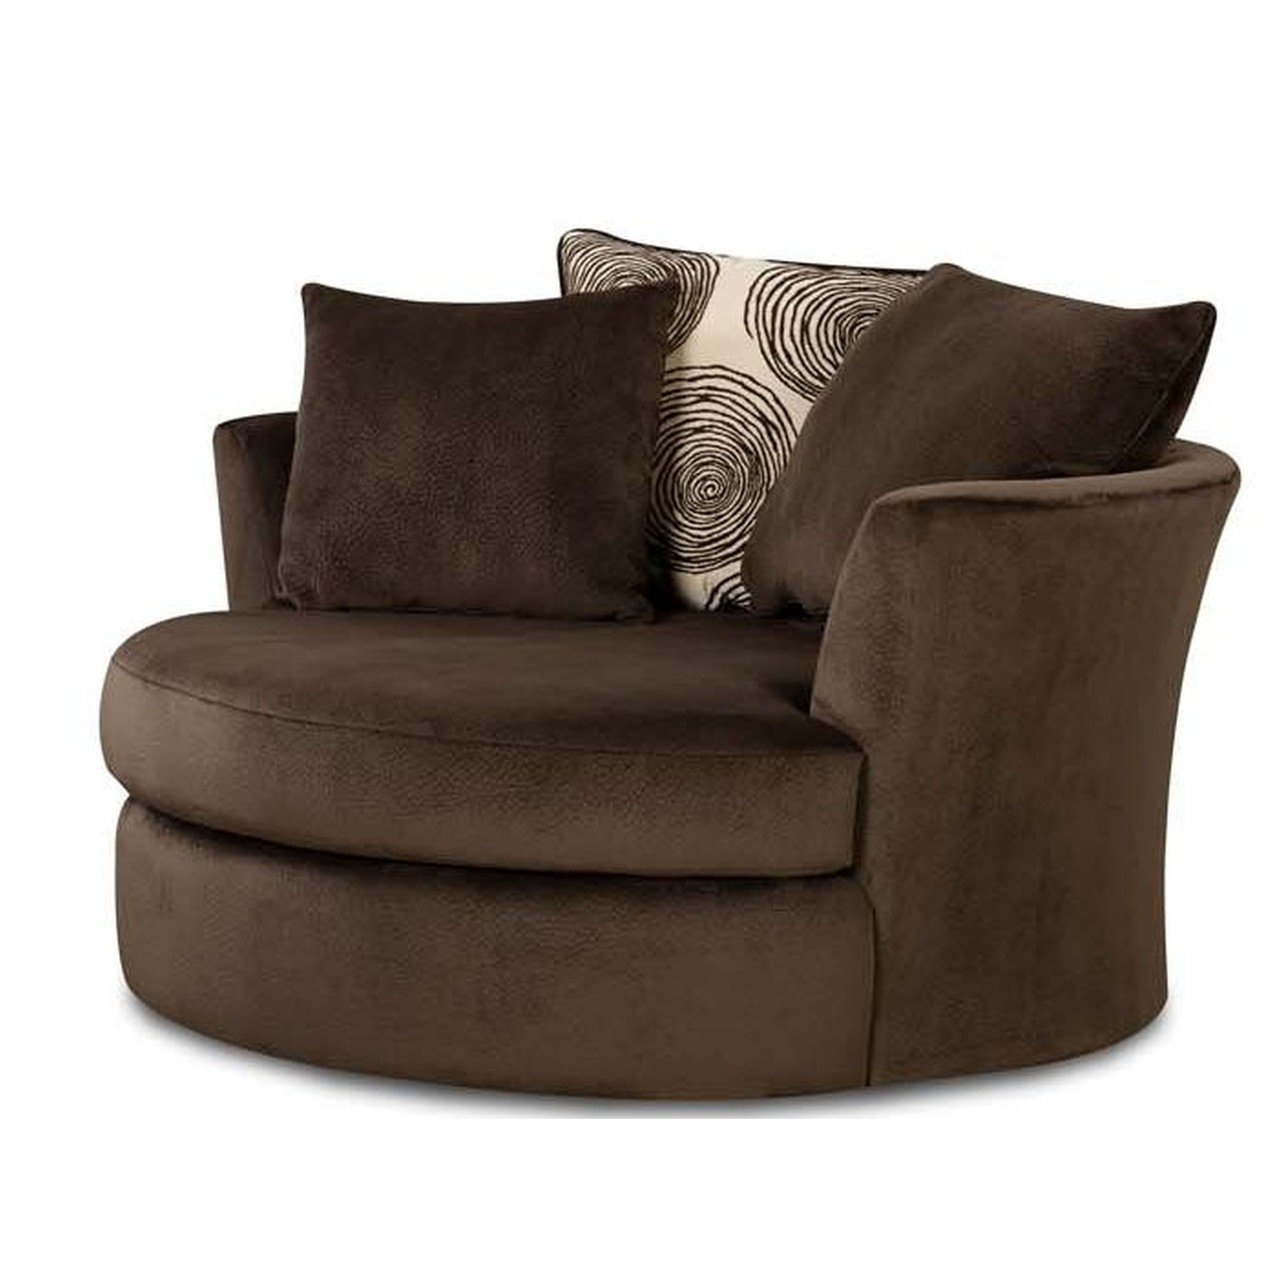 15 Collection Of Round Sofa Chair Sofa Ideas